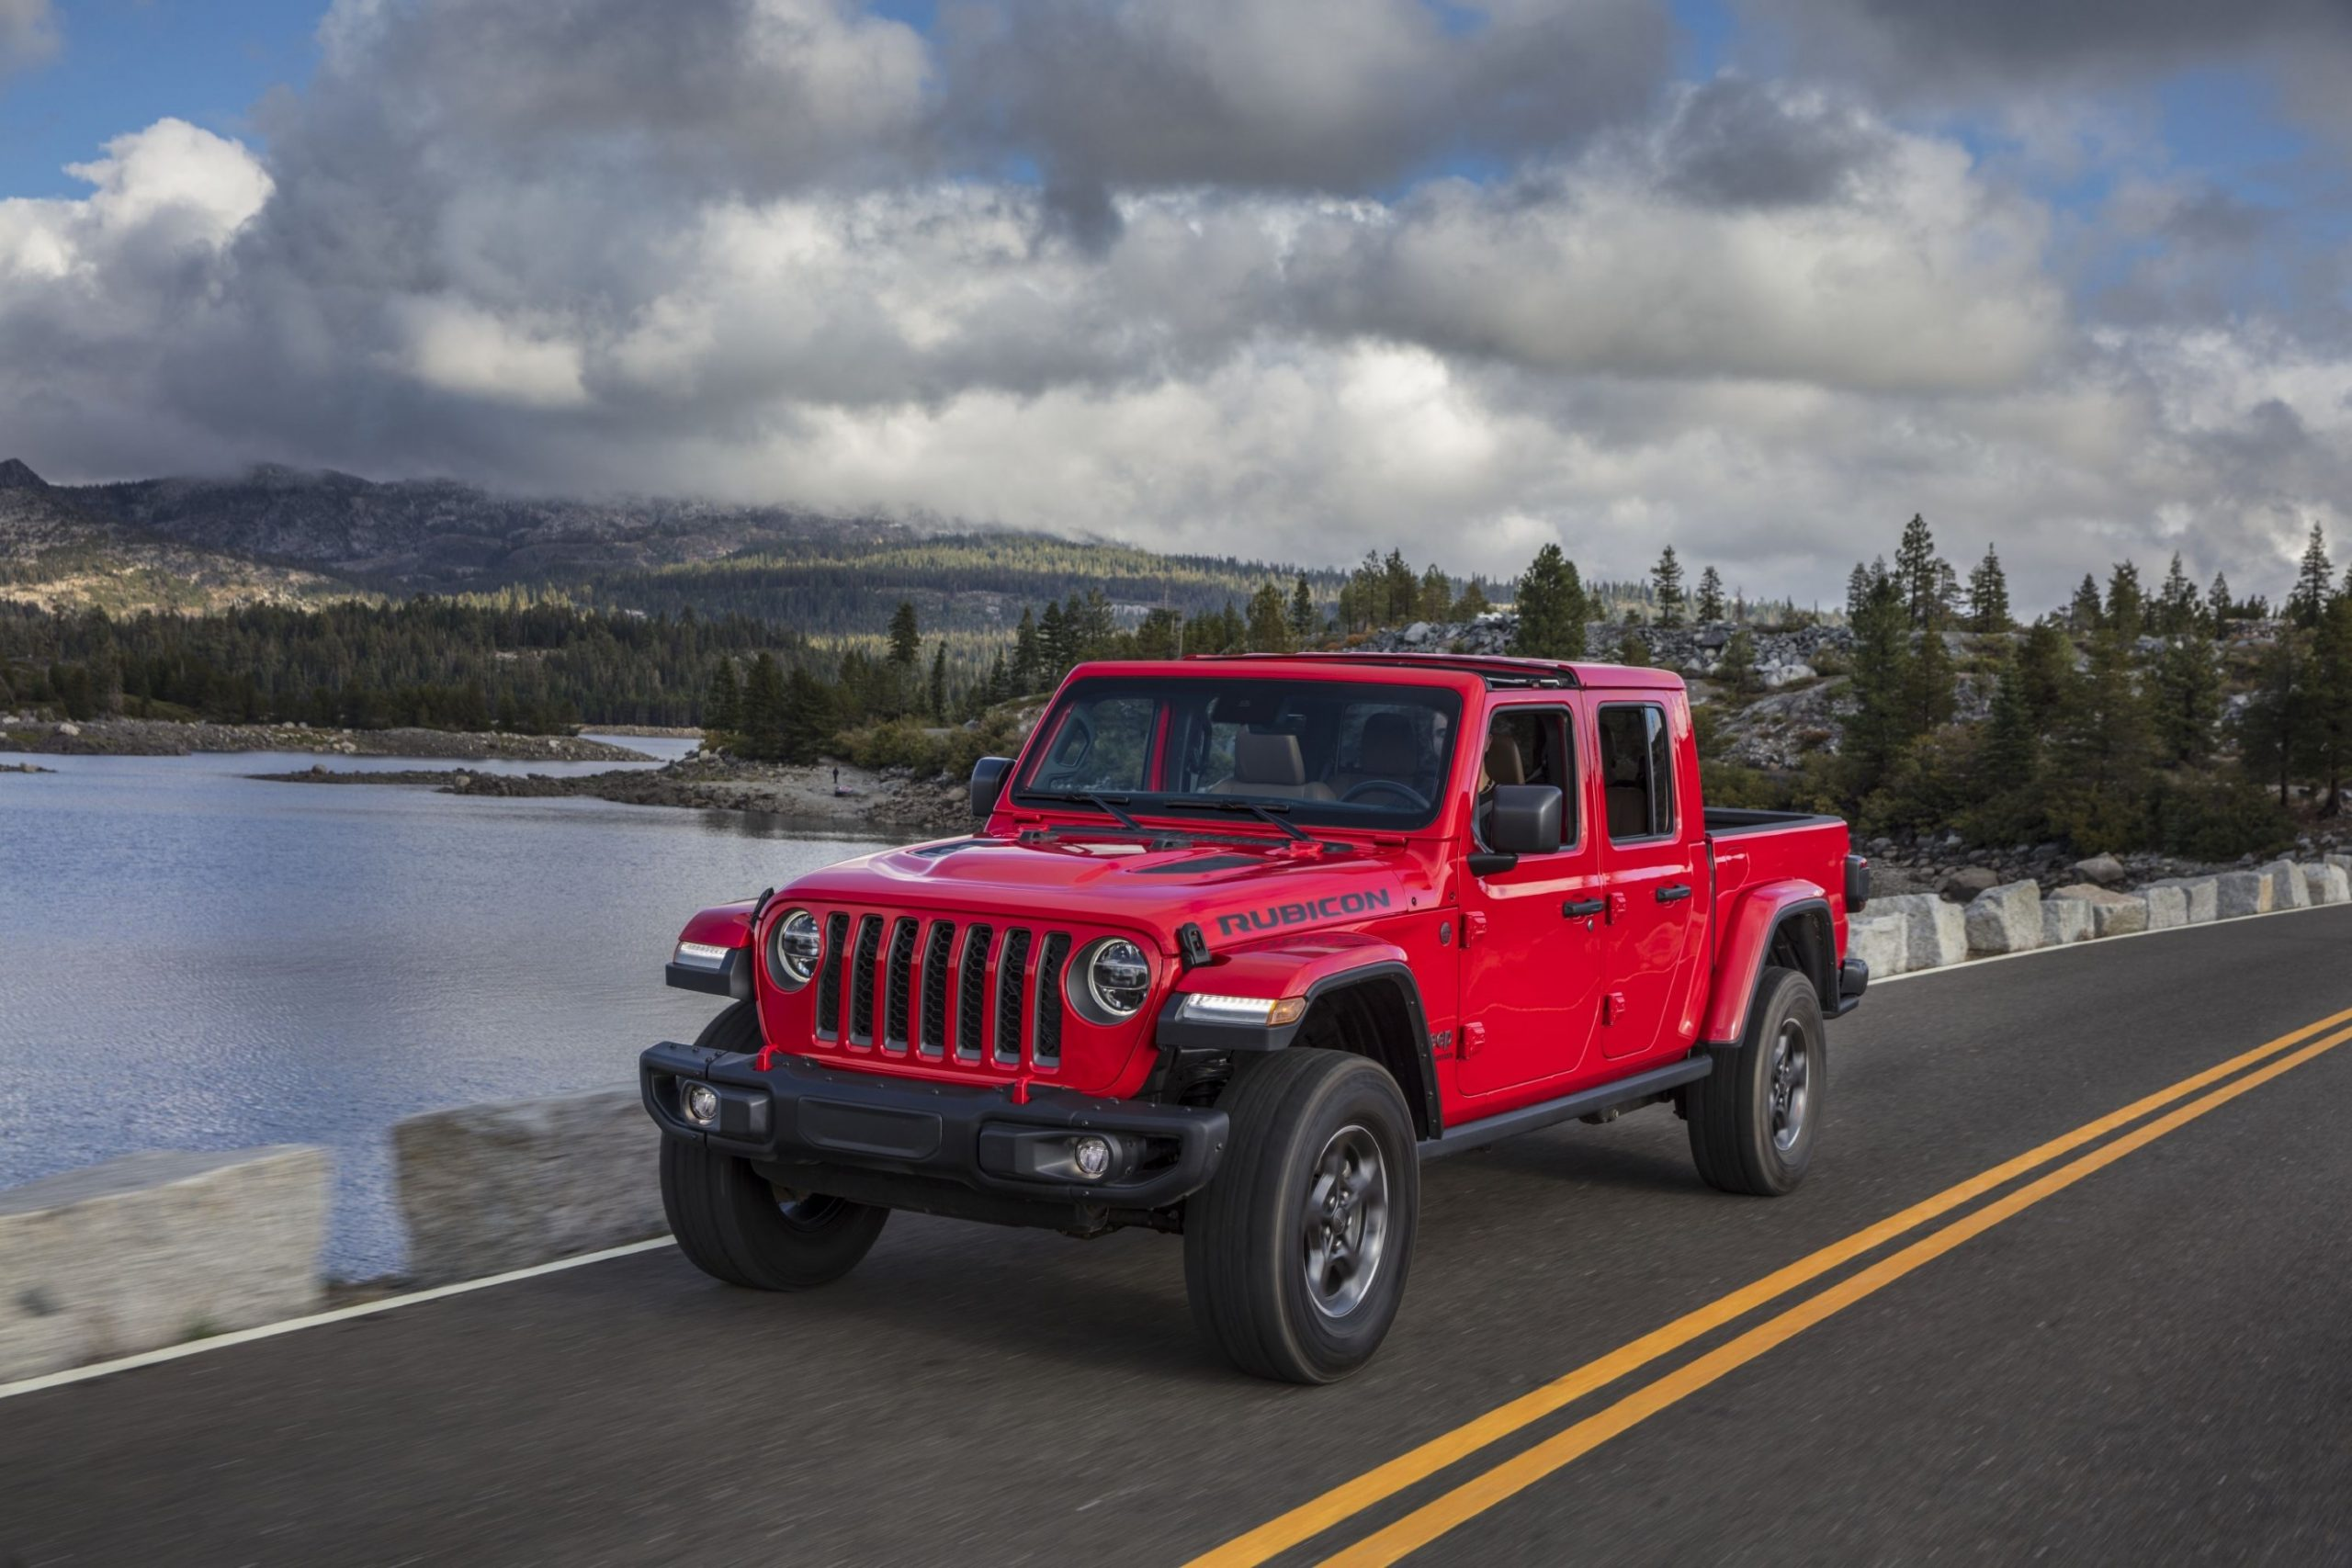 5 Jeep Gladiator Review, Pricing, and Specs